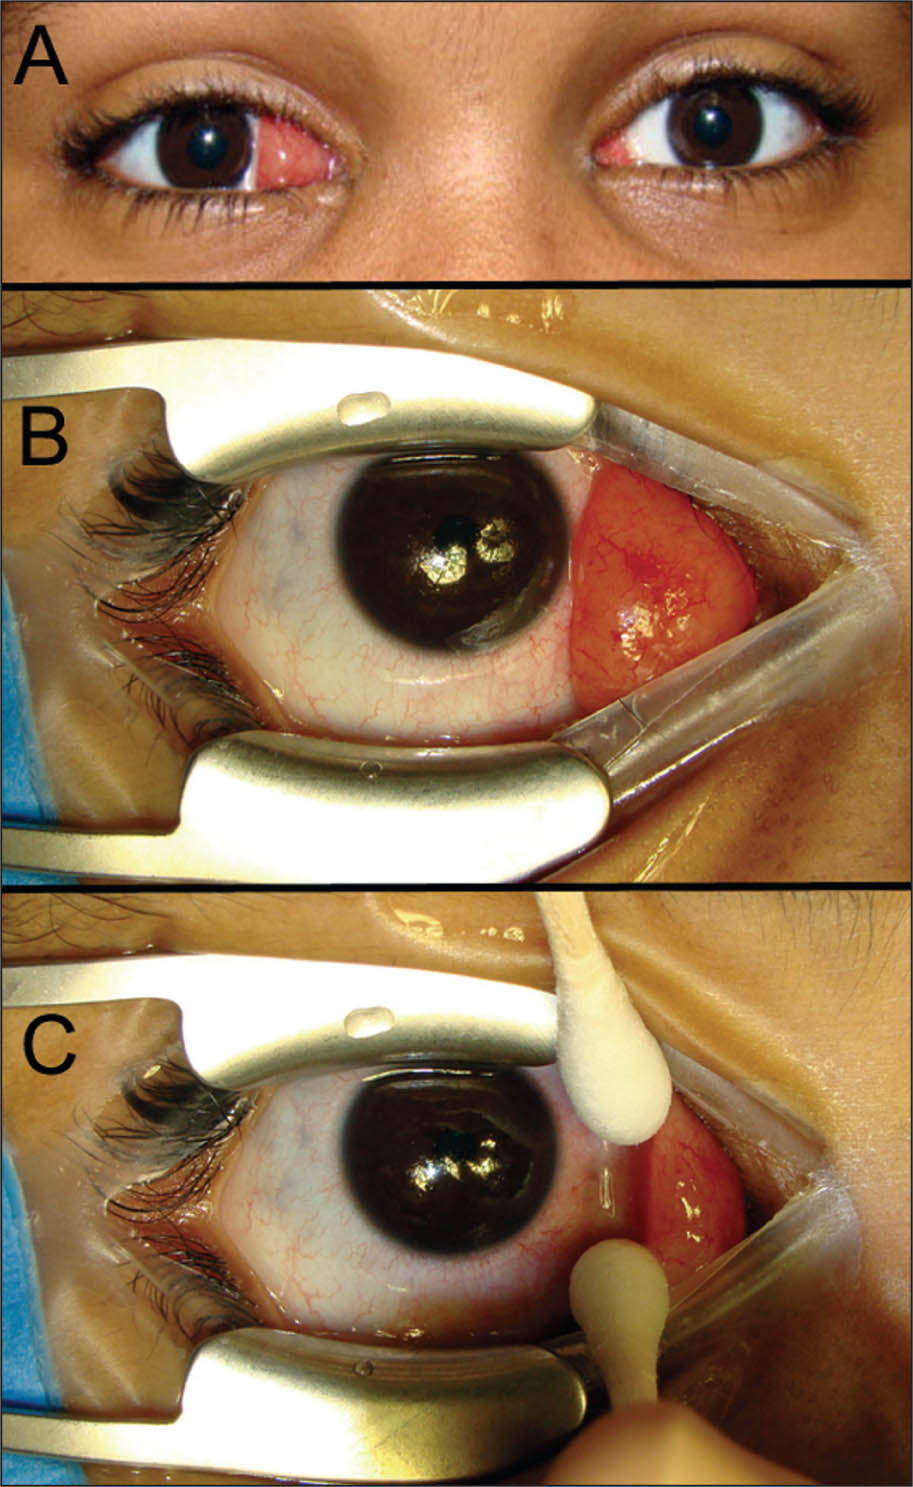 Clinical Photographs of the Conjunctival Lesions. (A) the Main Lesion on the Right Eye Nasal Conjunctiva and the Small Lesion on the Left Eye Nasal Conjunctiva. (B) Intraoperative Photograph of the Right Eye Conjunctival Lesion. (C) the Lesion Has a Narrow Base and Is not Attached to Most of the Bulbar Conjunctiva.